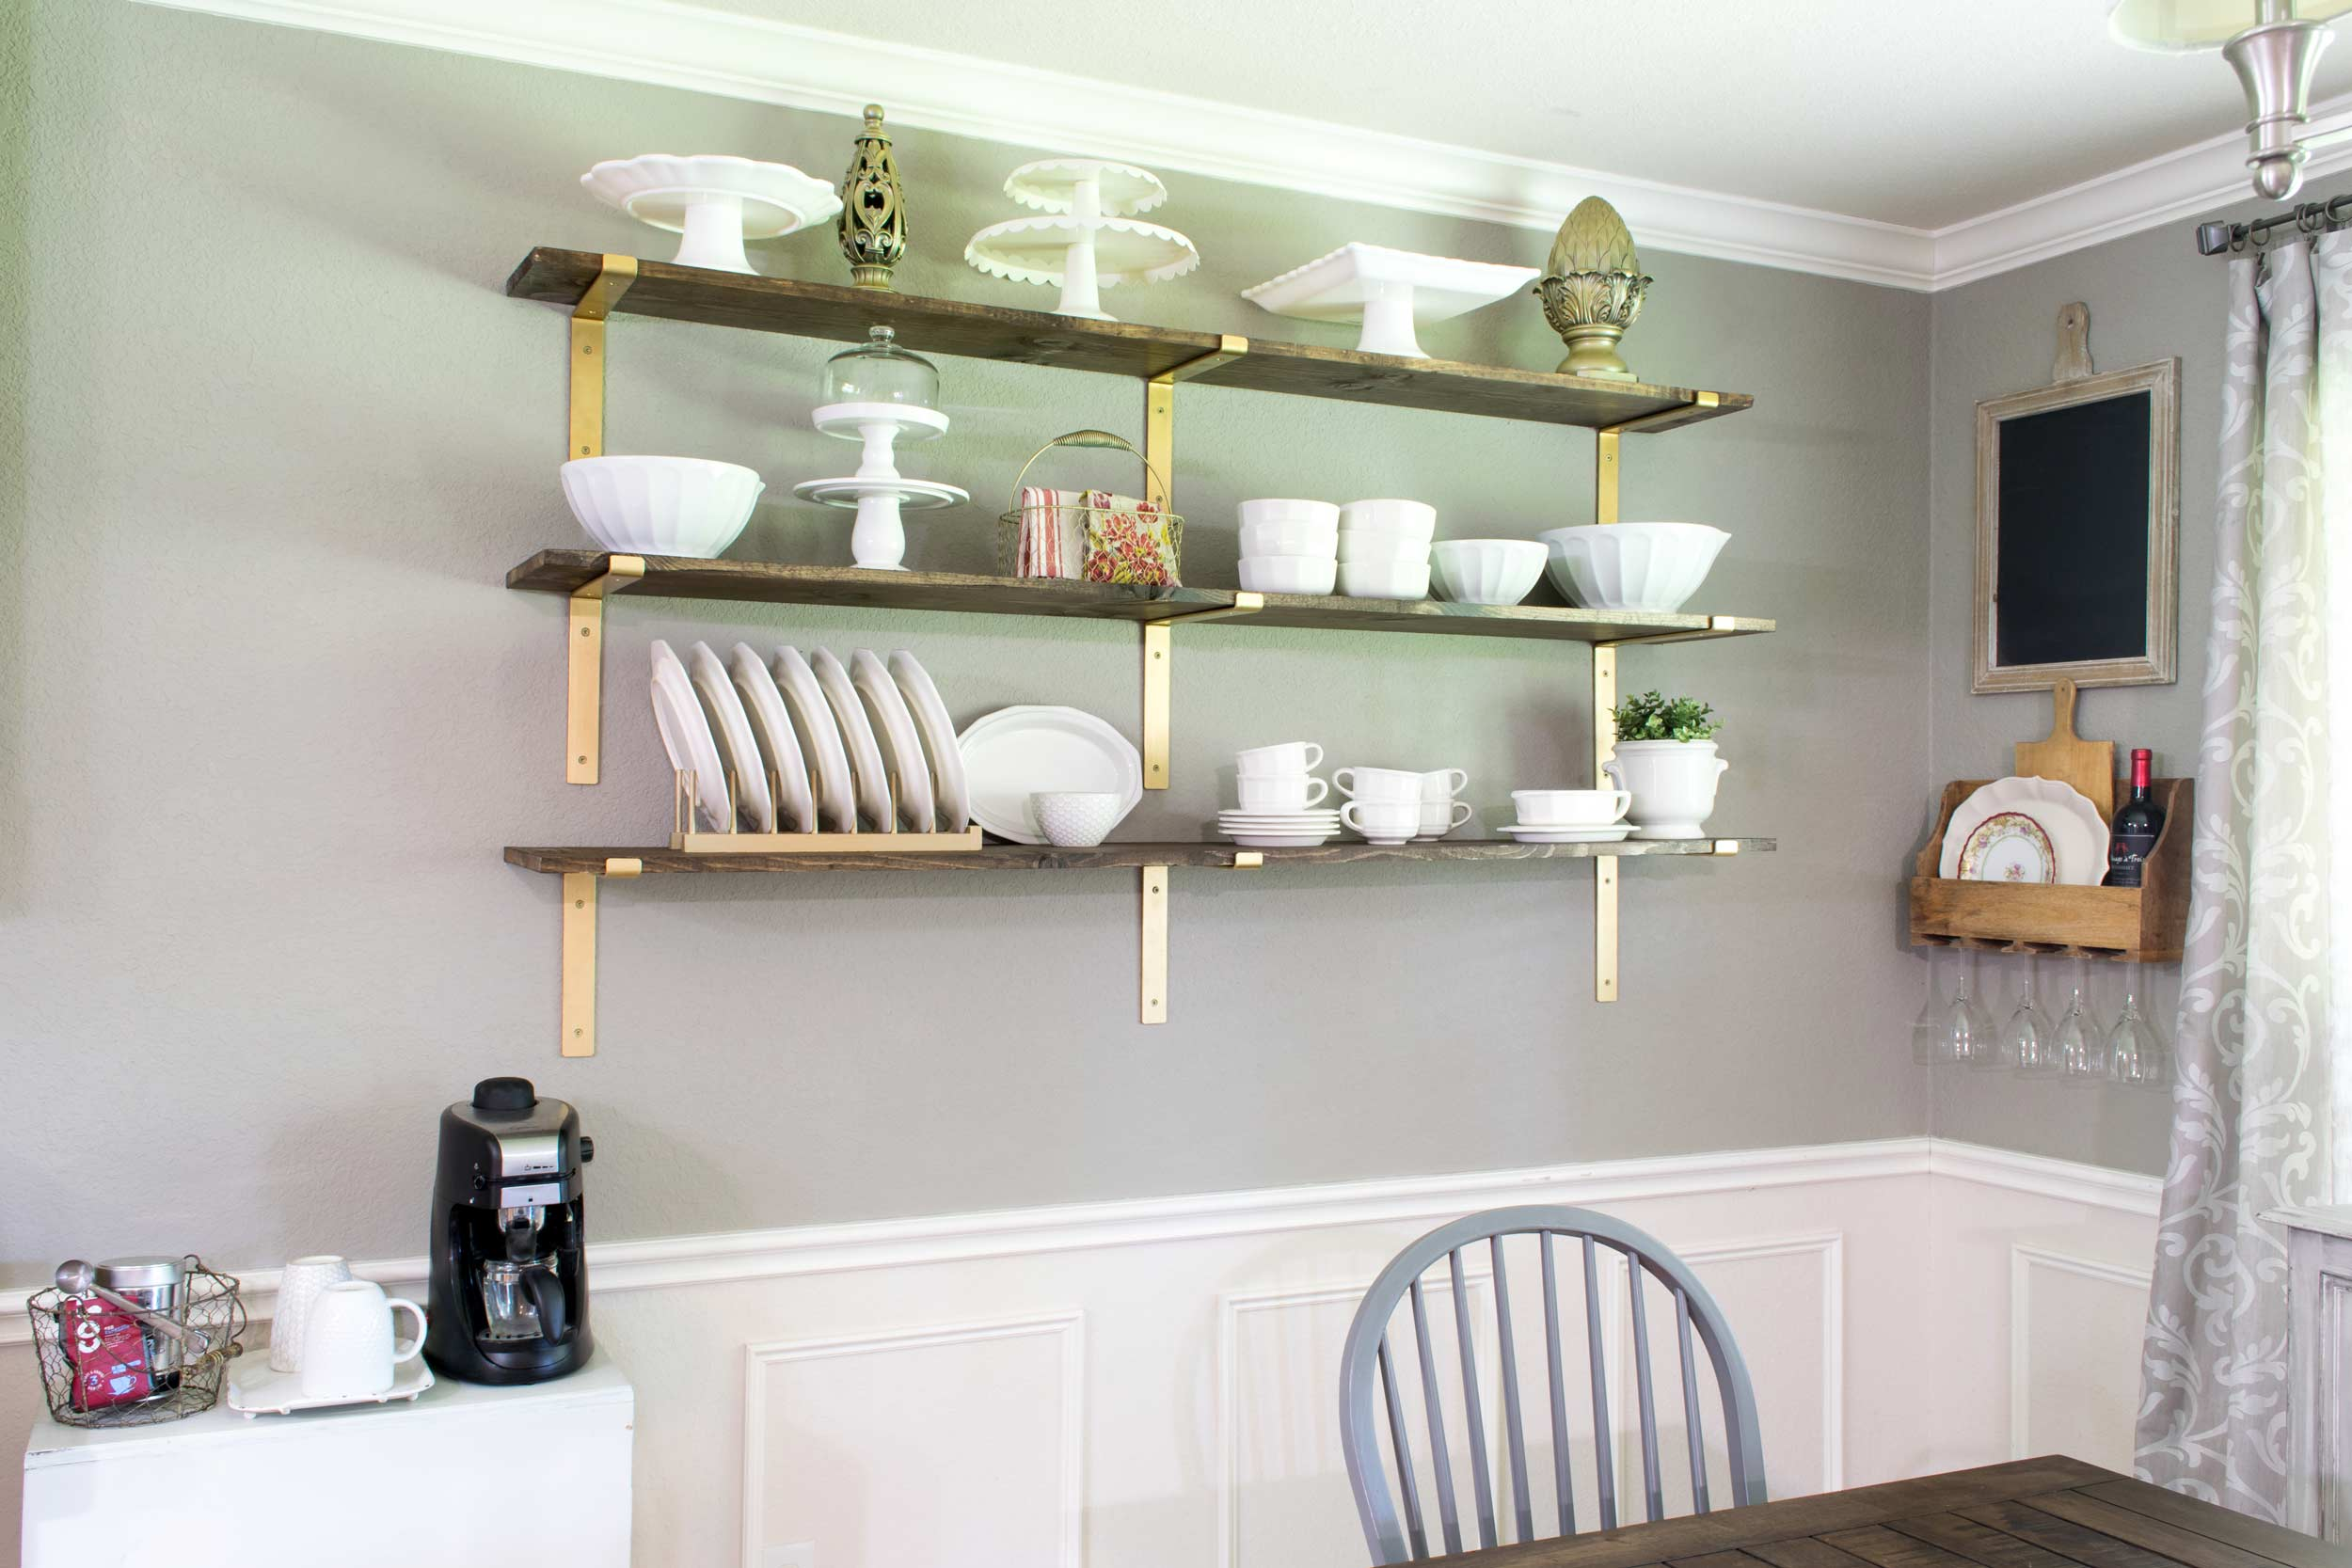 Dining Room Shelves for Dish Display - Major Hoff Takes A ...